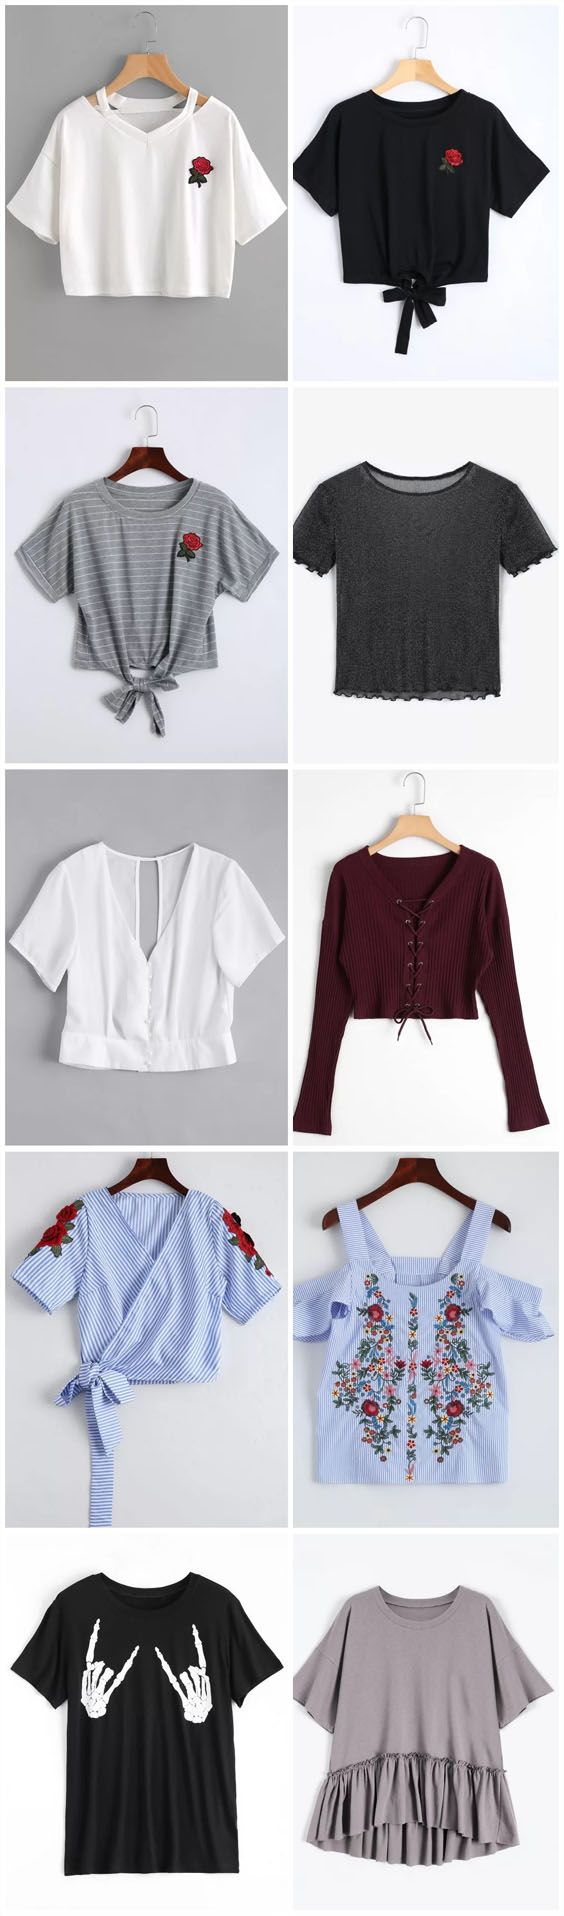 Back to school, back to saving! Free shipping worldwide! Floral Embroidered Cold Shoulder Top zaful,zaful.com,tops,womens tops,long sleeves,long sleeve tops,blouse,blouses,blouse designs,blouse outfit,blouse outfit casual,blouse outfit summer,blouse pattern,blouses for women,Summer outfits:Top,Outfits,Blouses,Tees,T-shirt,Tank top,Crop top,Shirts,Off shoulder blouses,Off the shoulder tops @zaful Extra 10% OFF Code:ZF2017